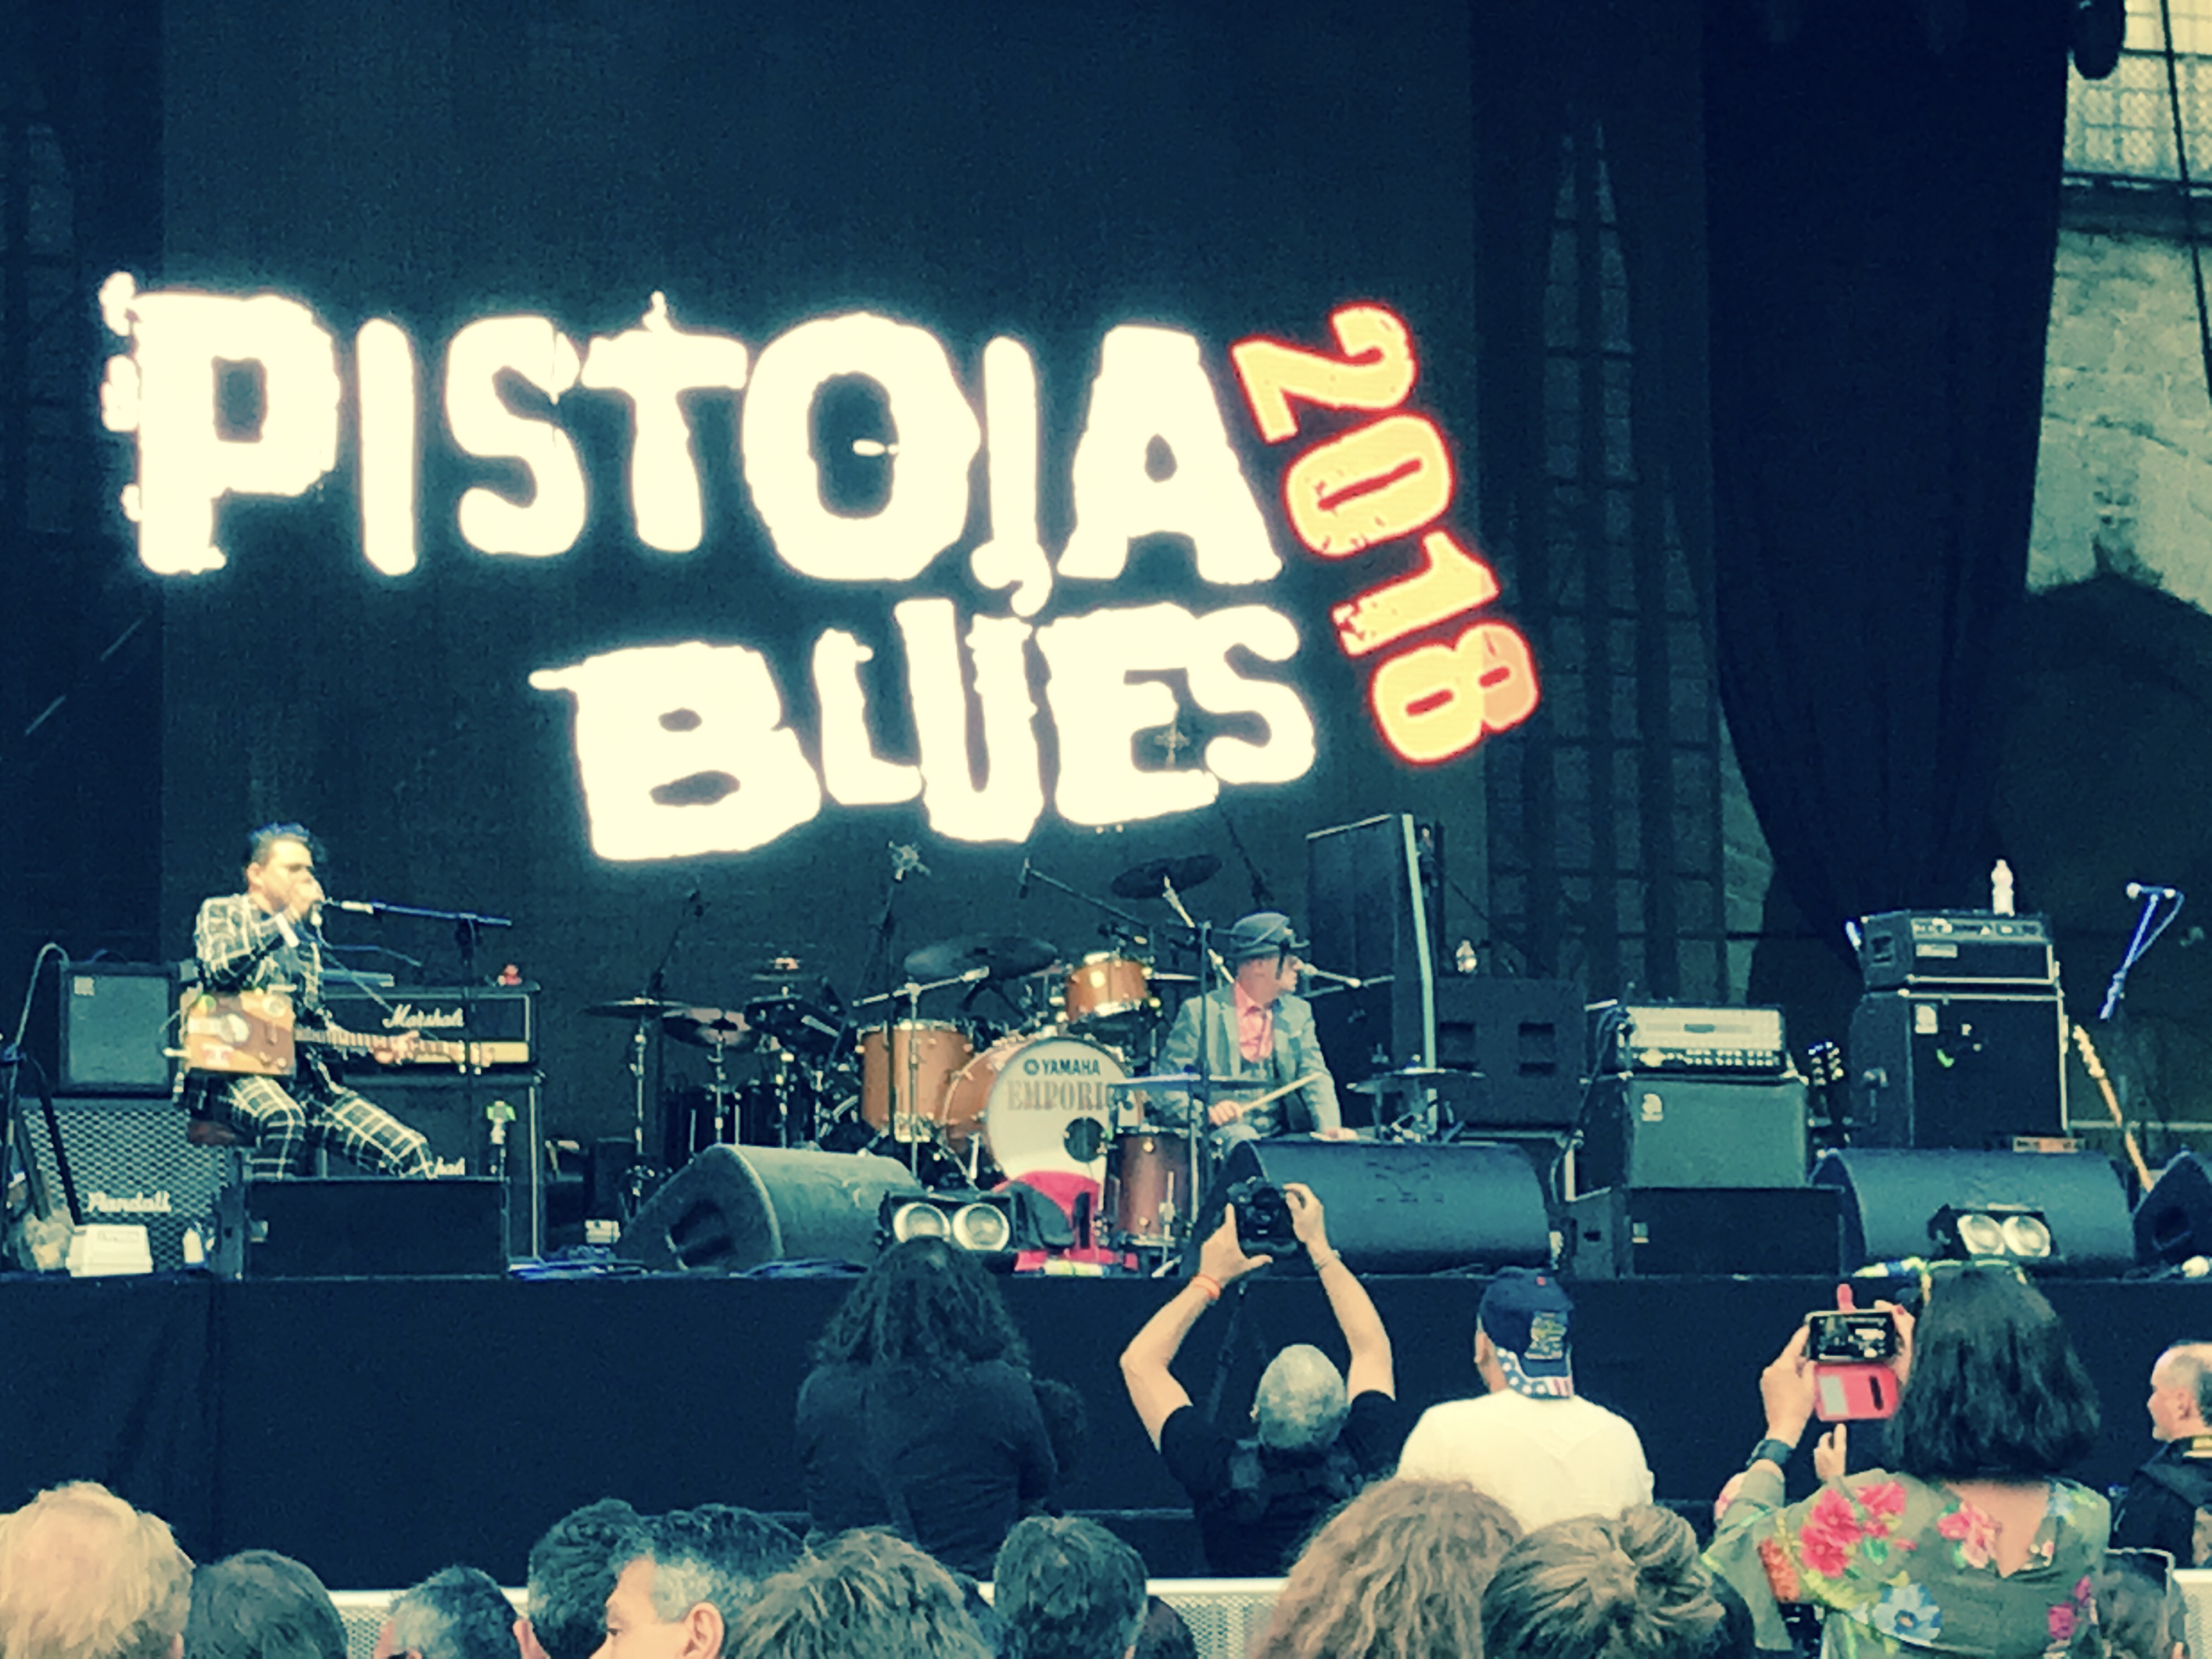 I Superdownhome portano il blues delle origini al Pistoia Blues Festival